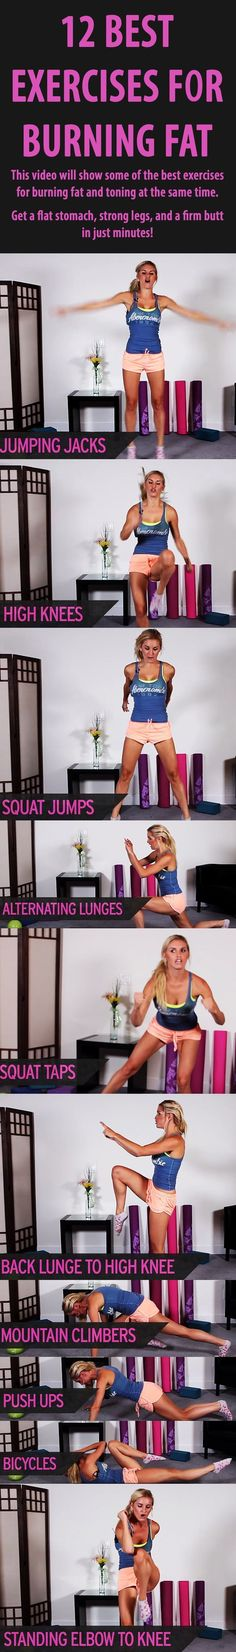 See more here ► https://www.youtube.com/watch?v=-pwmXYq0RQk Tags: lose weight best way, best way to loss weight, best way for teens to lose weight - Do these for HIIT workout | Calorie burning workout: 12 absolutely best exercises for BURNING FAT.